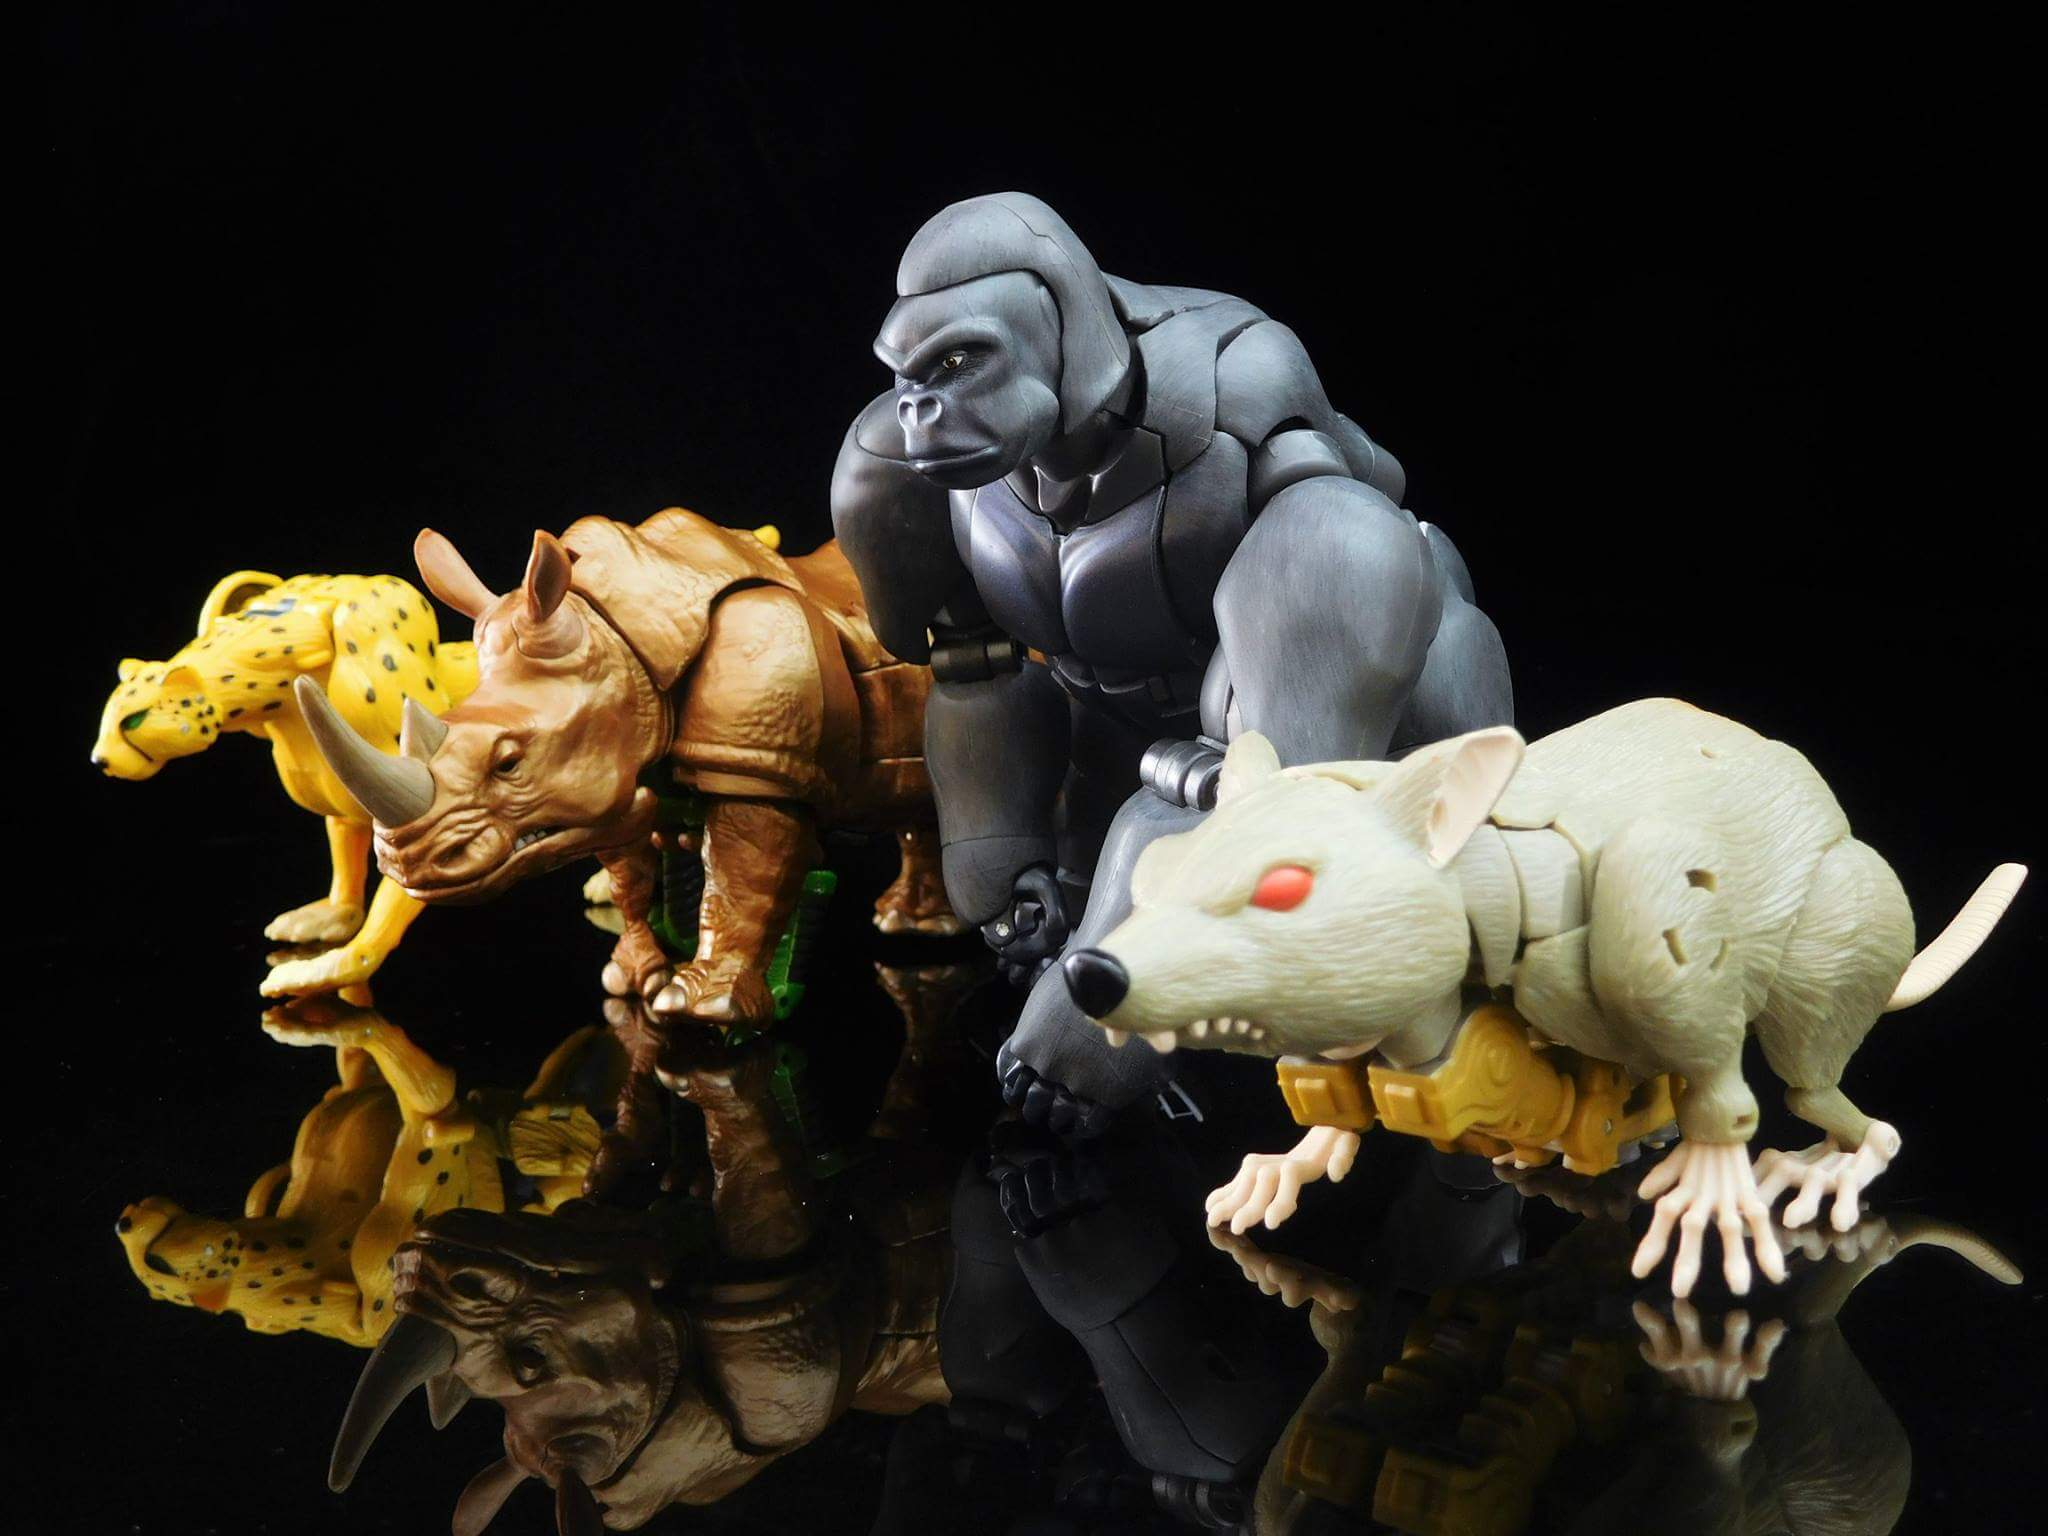 [Masterpiece] MP-32, MP-38 Optimus Primal et MP-38+ Burning Convoy (Beast Wars) - Page 3 PoYIvyOI